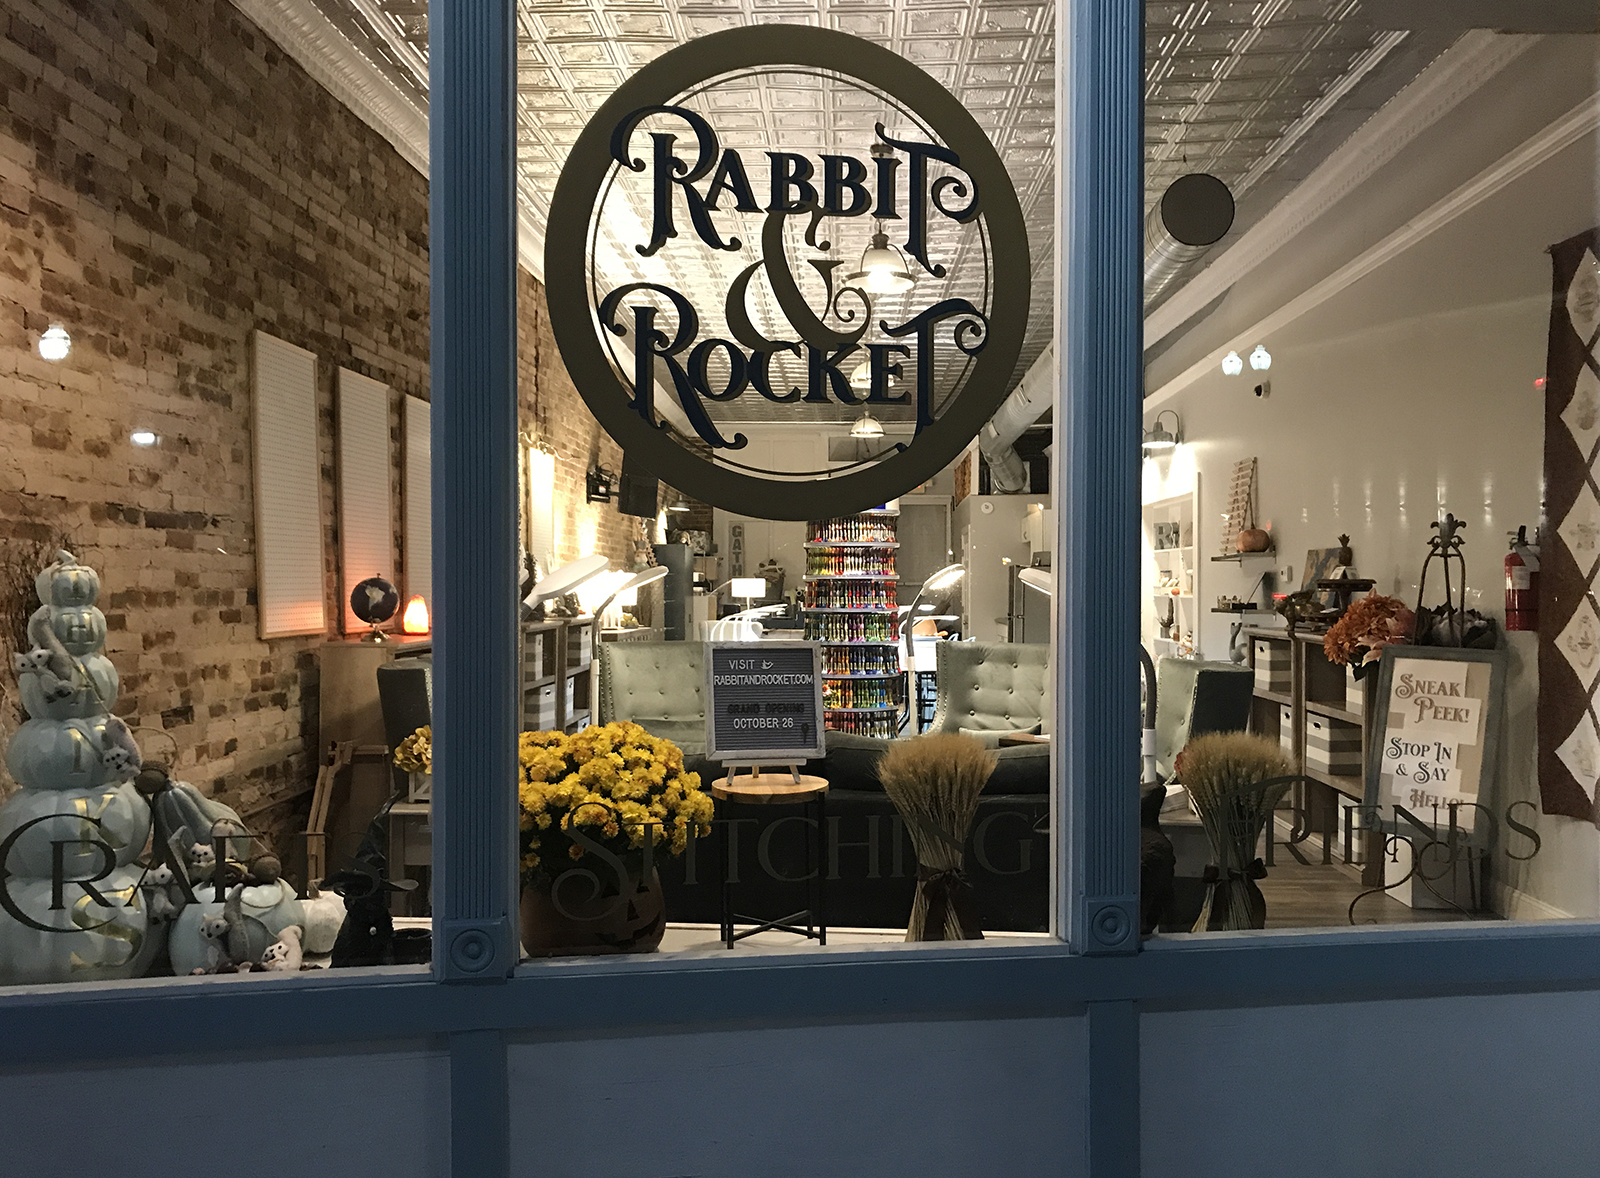 Storefront view of Rabbit & Rocket showing soft seating area and window signage.